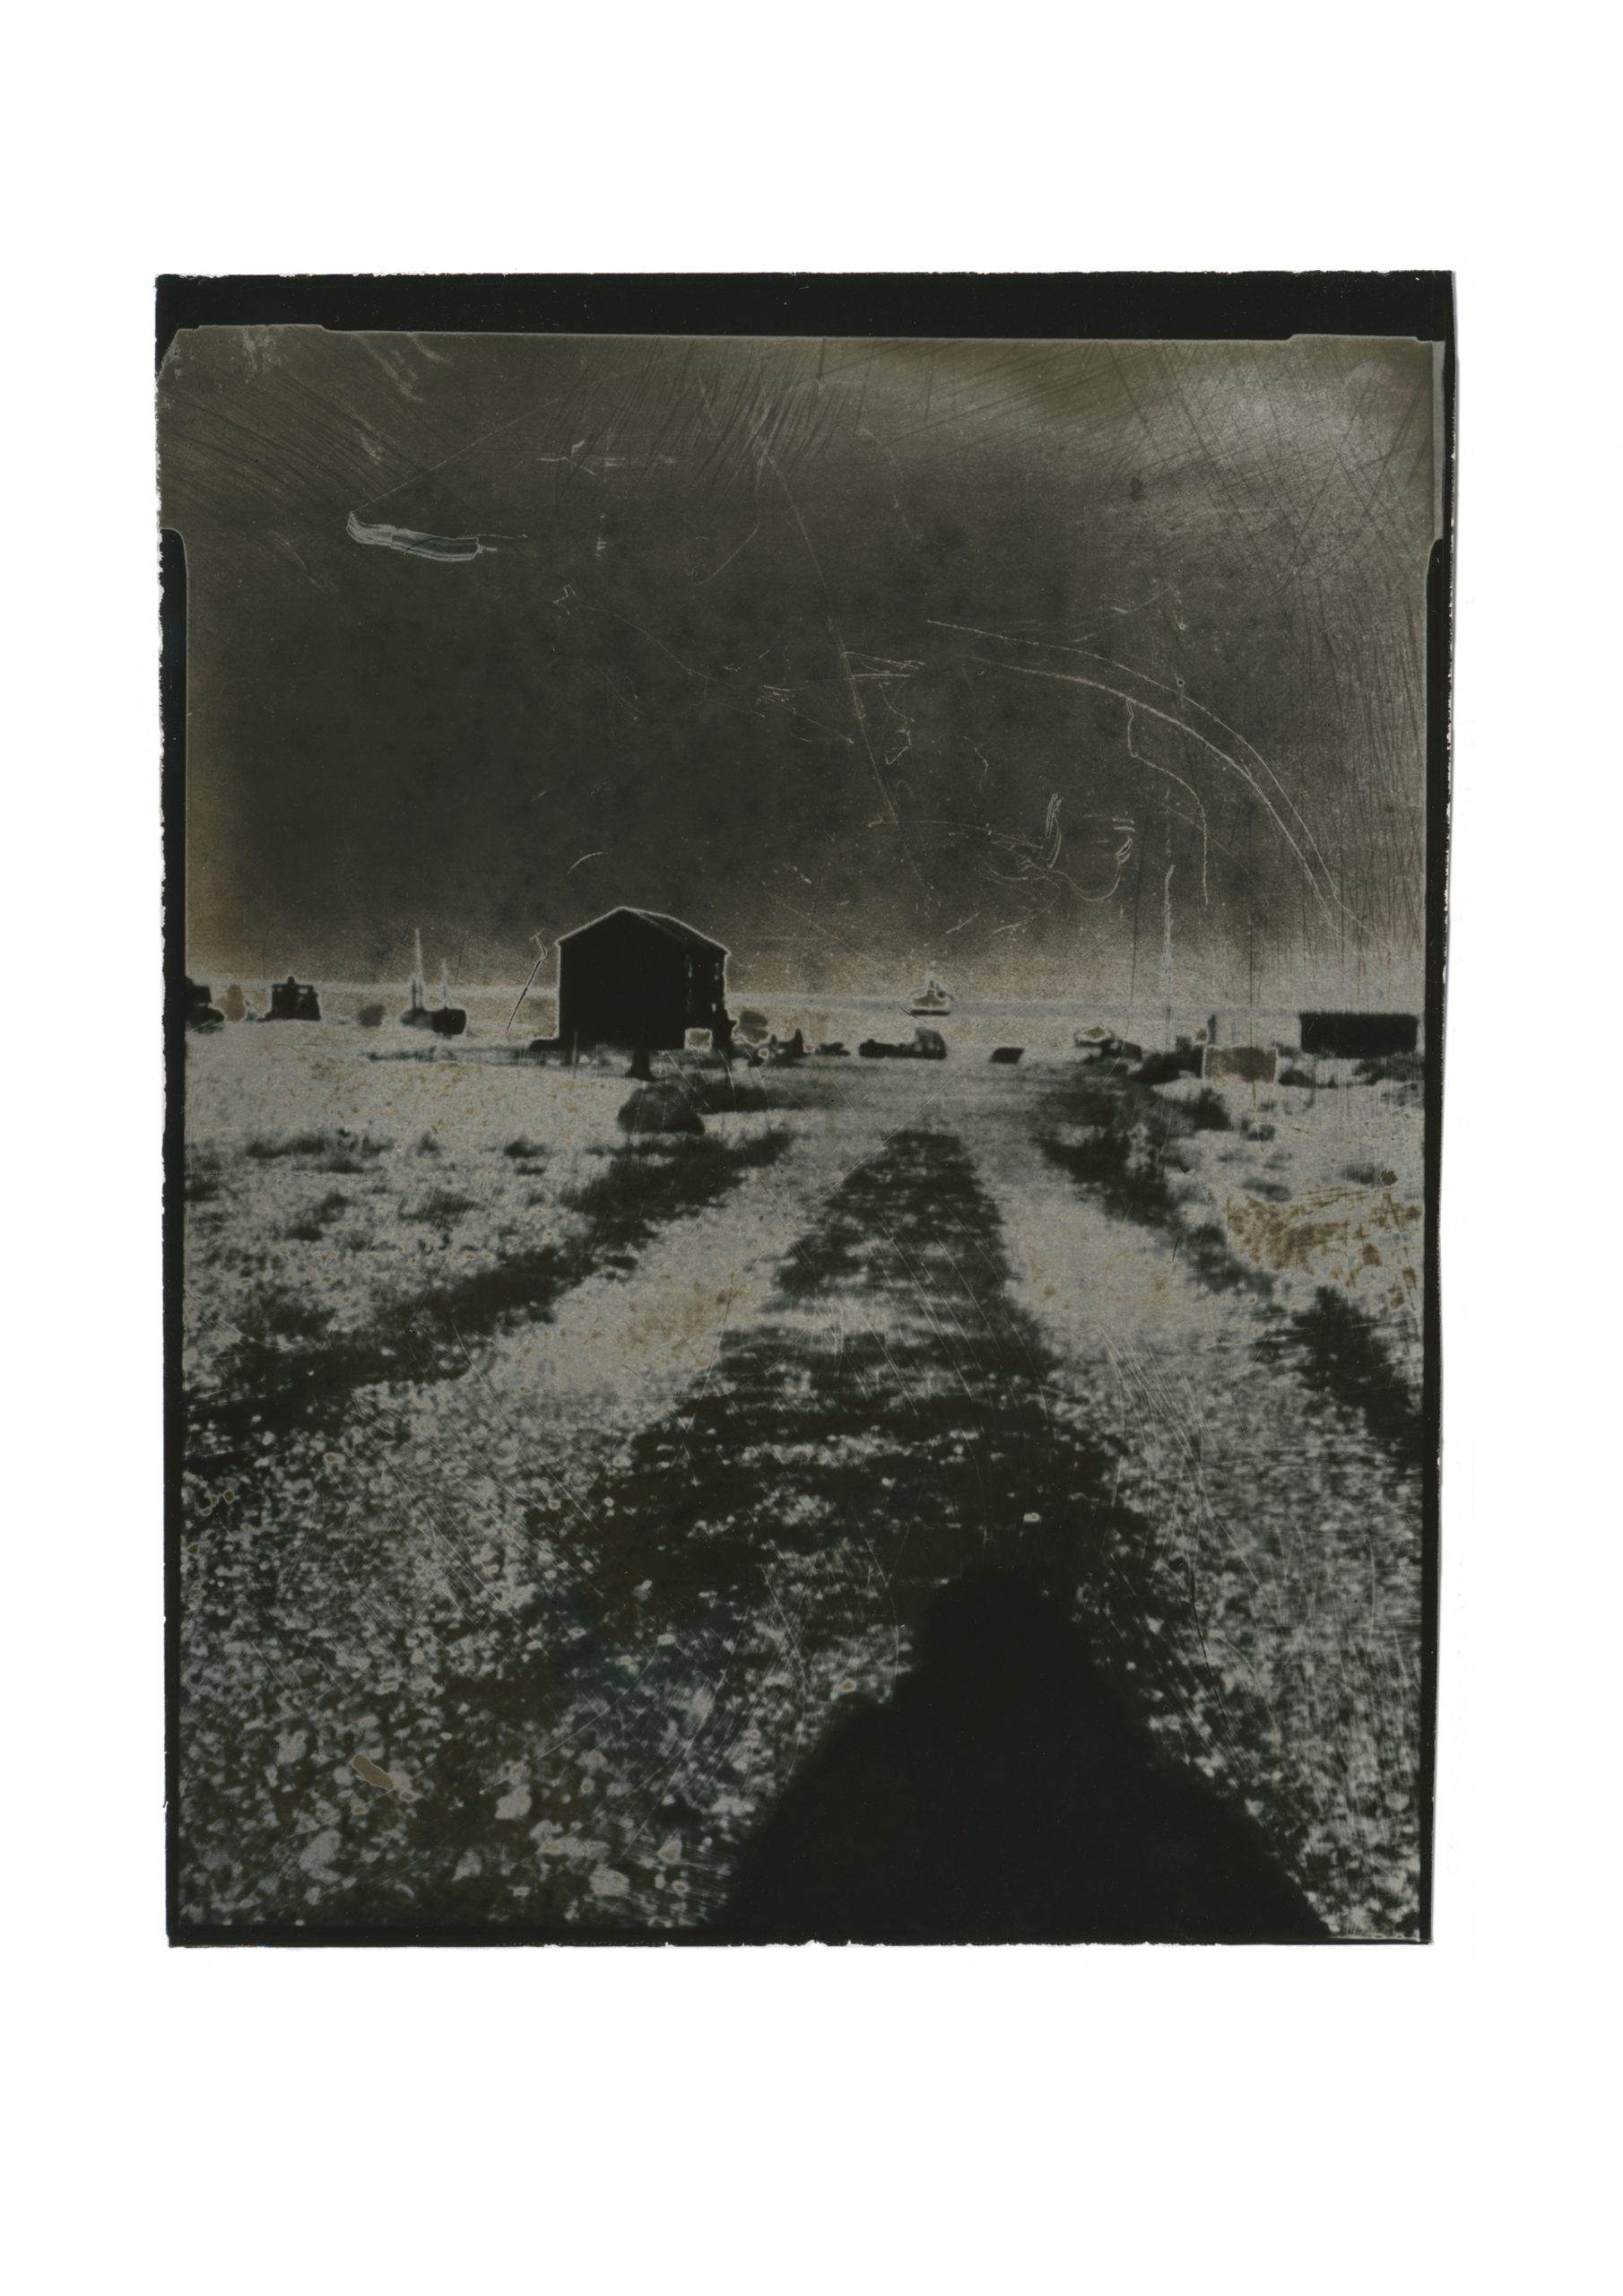 one point perspective path leading to horizon line with small huts in silhouette, shadow of figure in the foreground